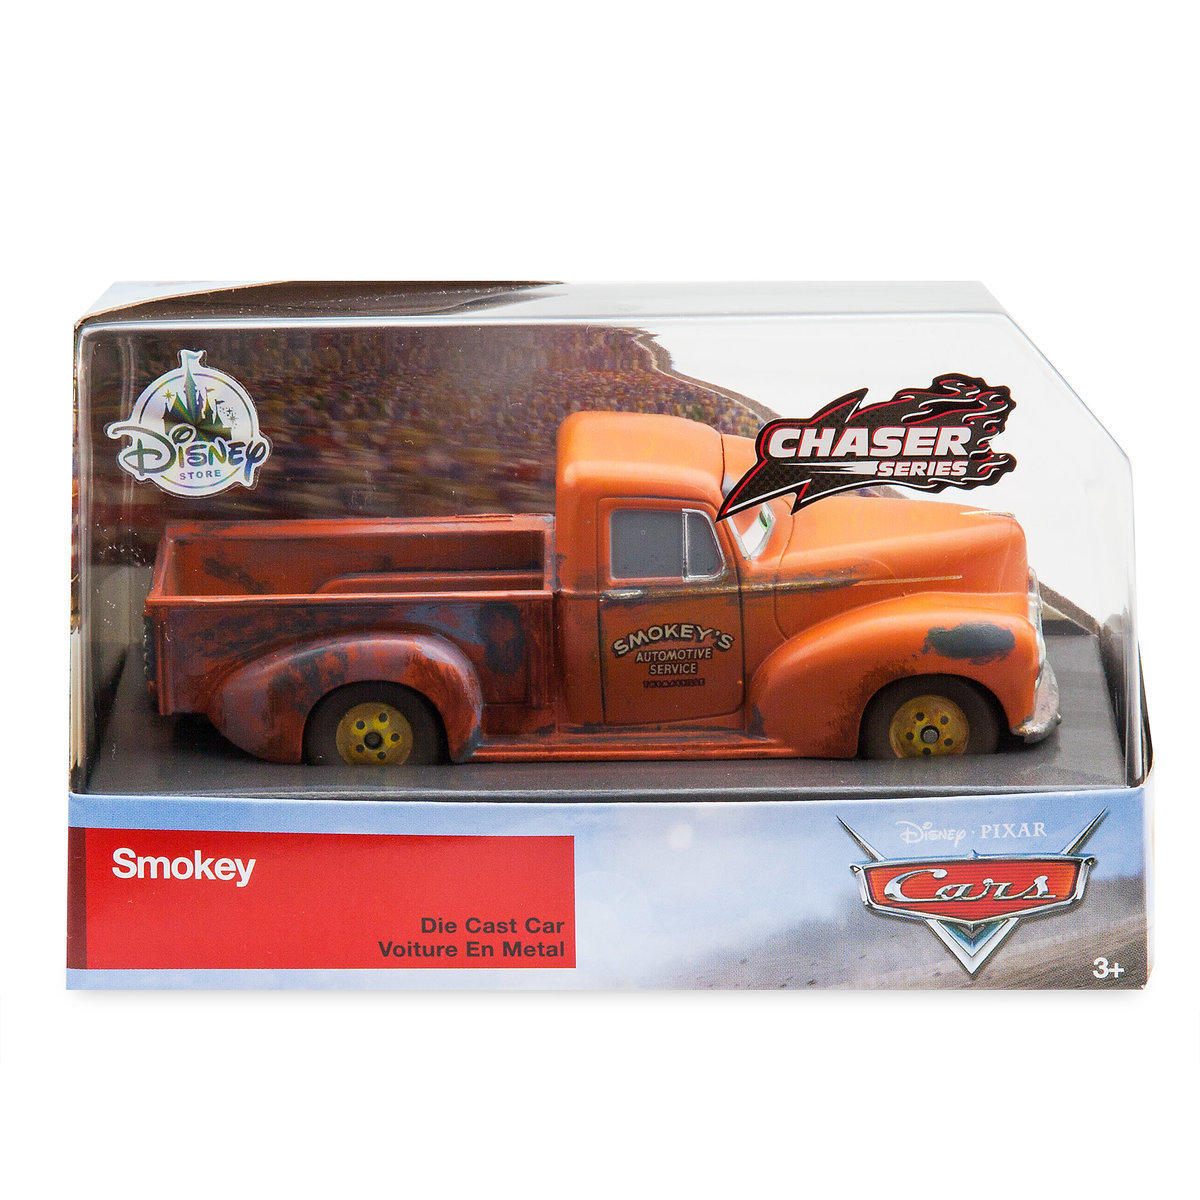 Smokey Die Cast Car Chaser Series Cars 3 Limited Release Out